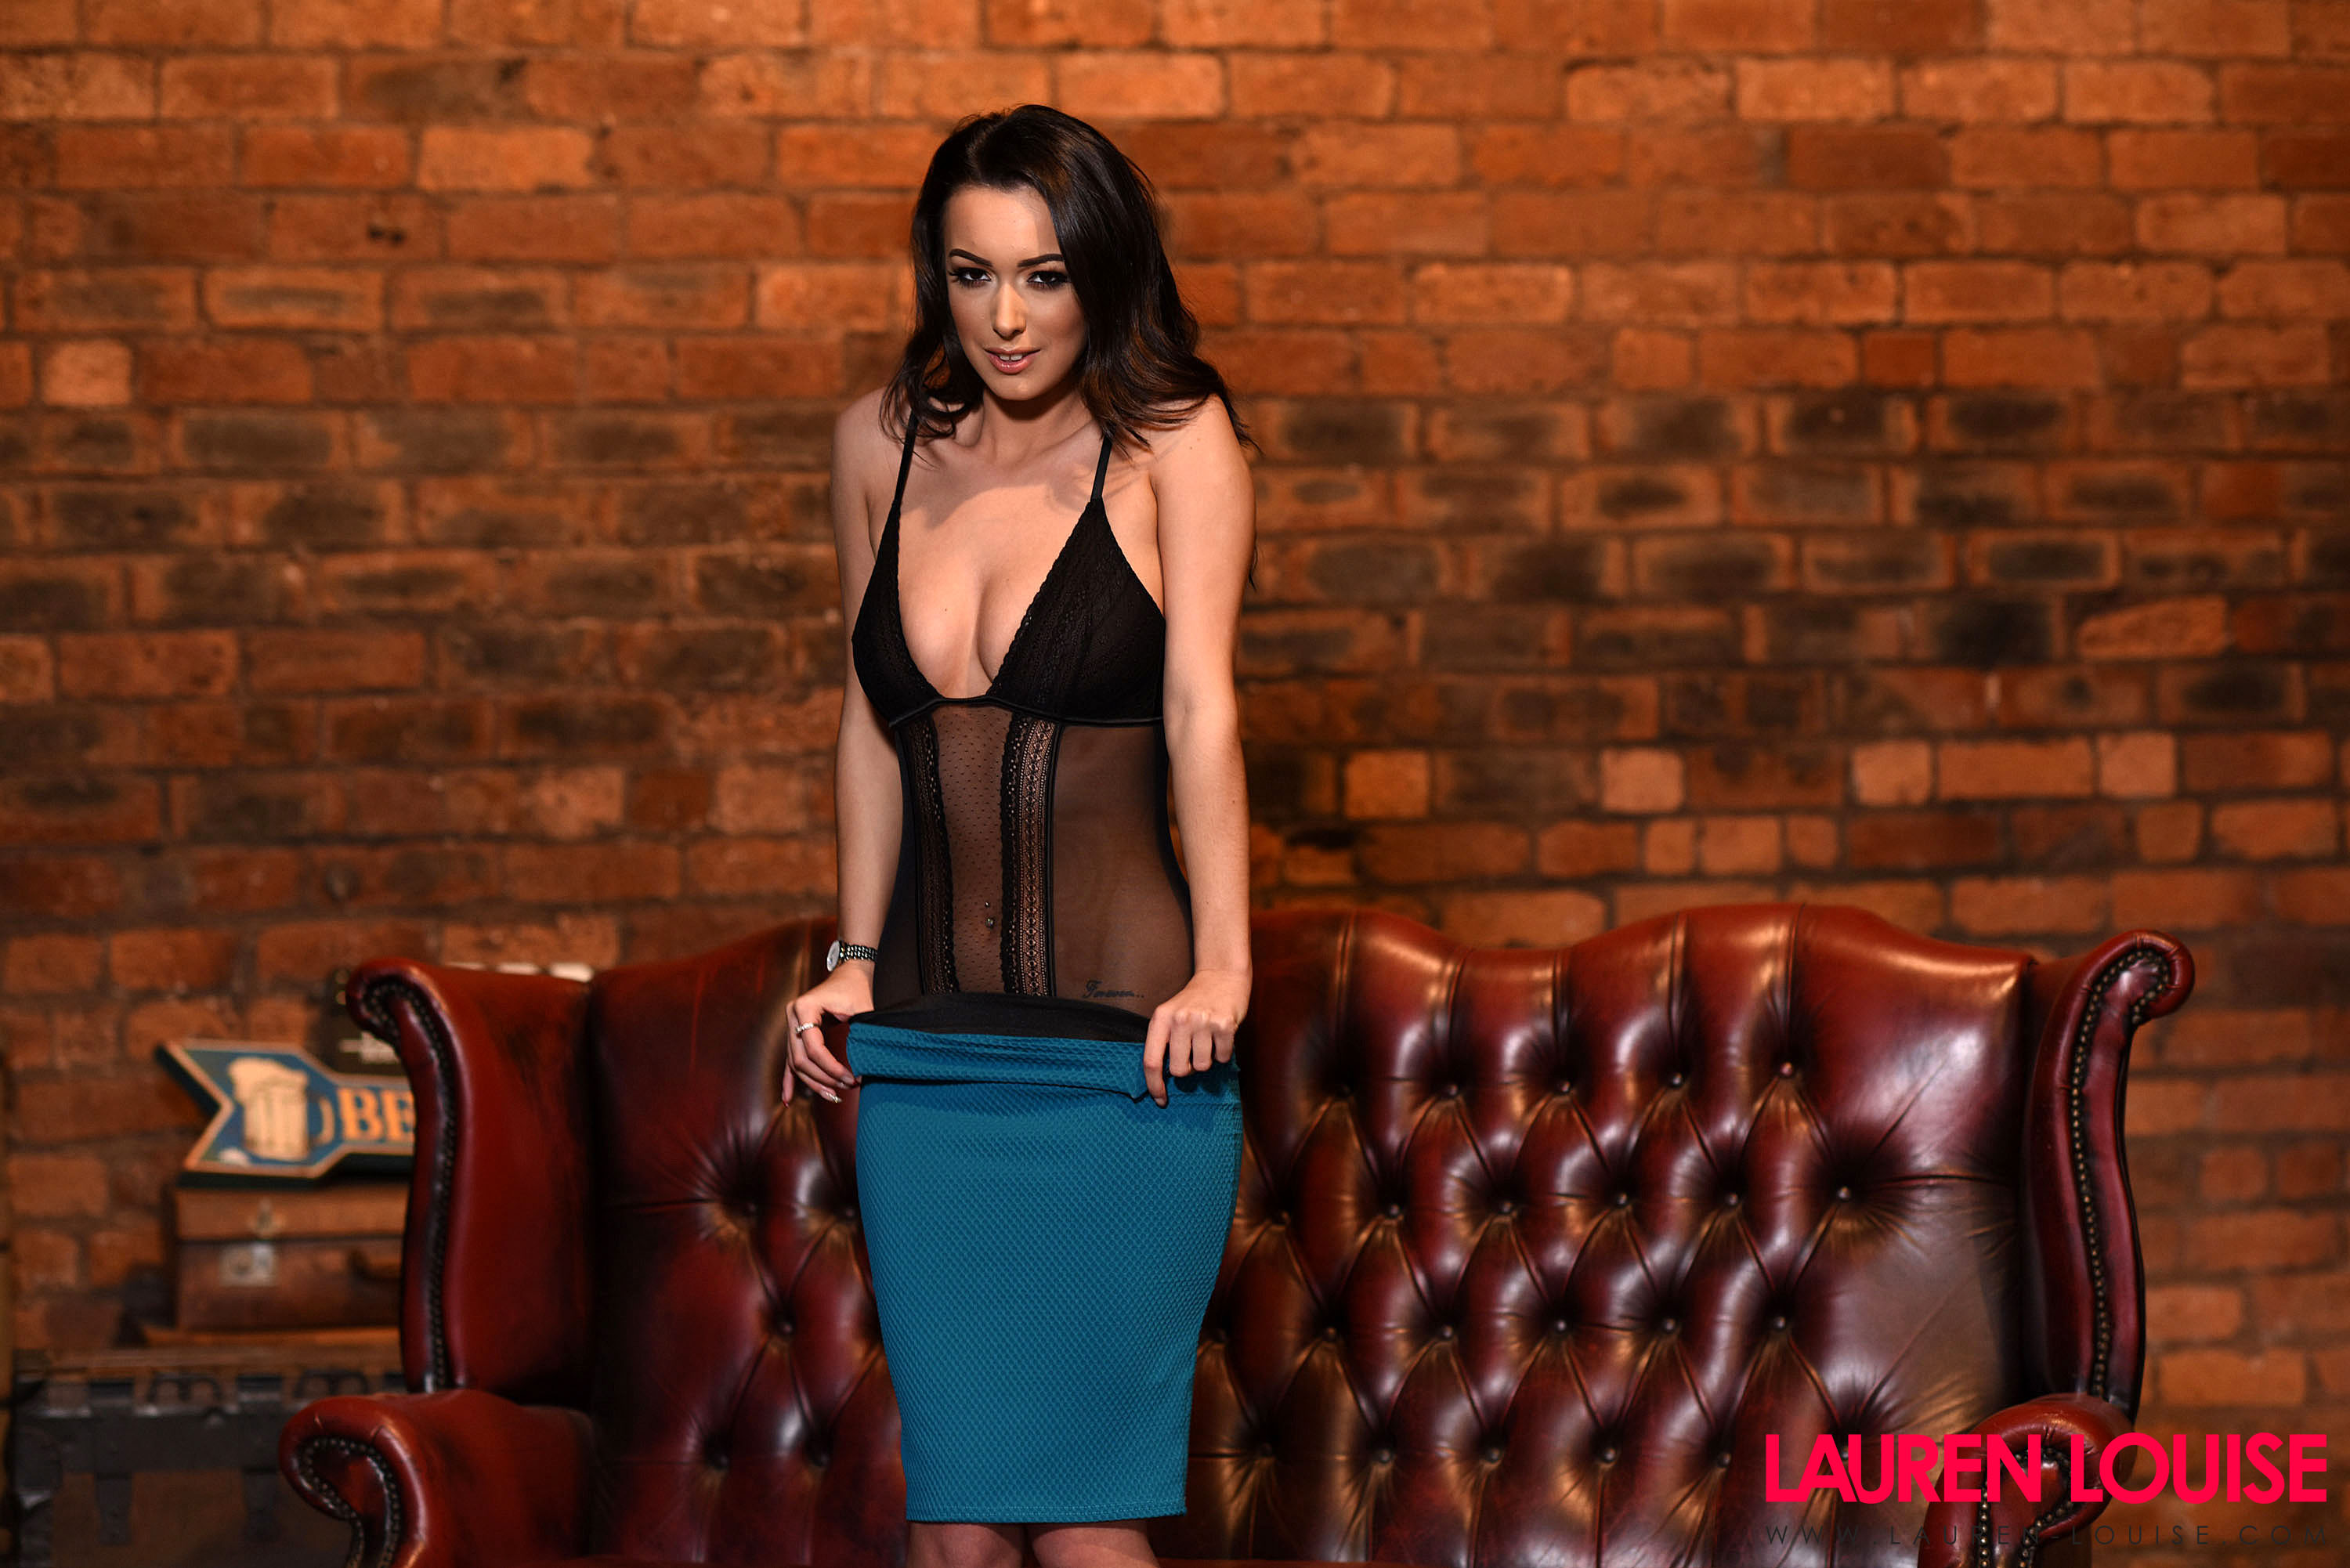 Lauren Louise Perky Breasts Black Lingerie and Tight Turquoise Skirt